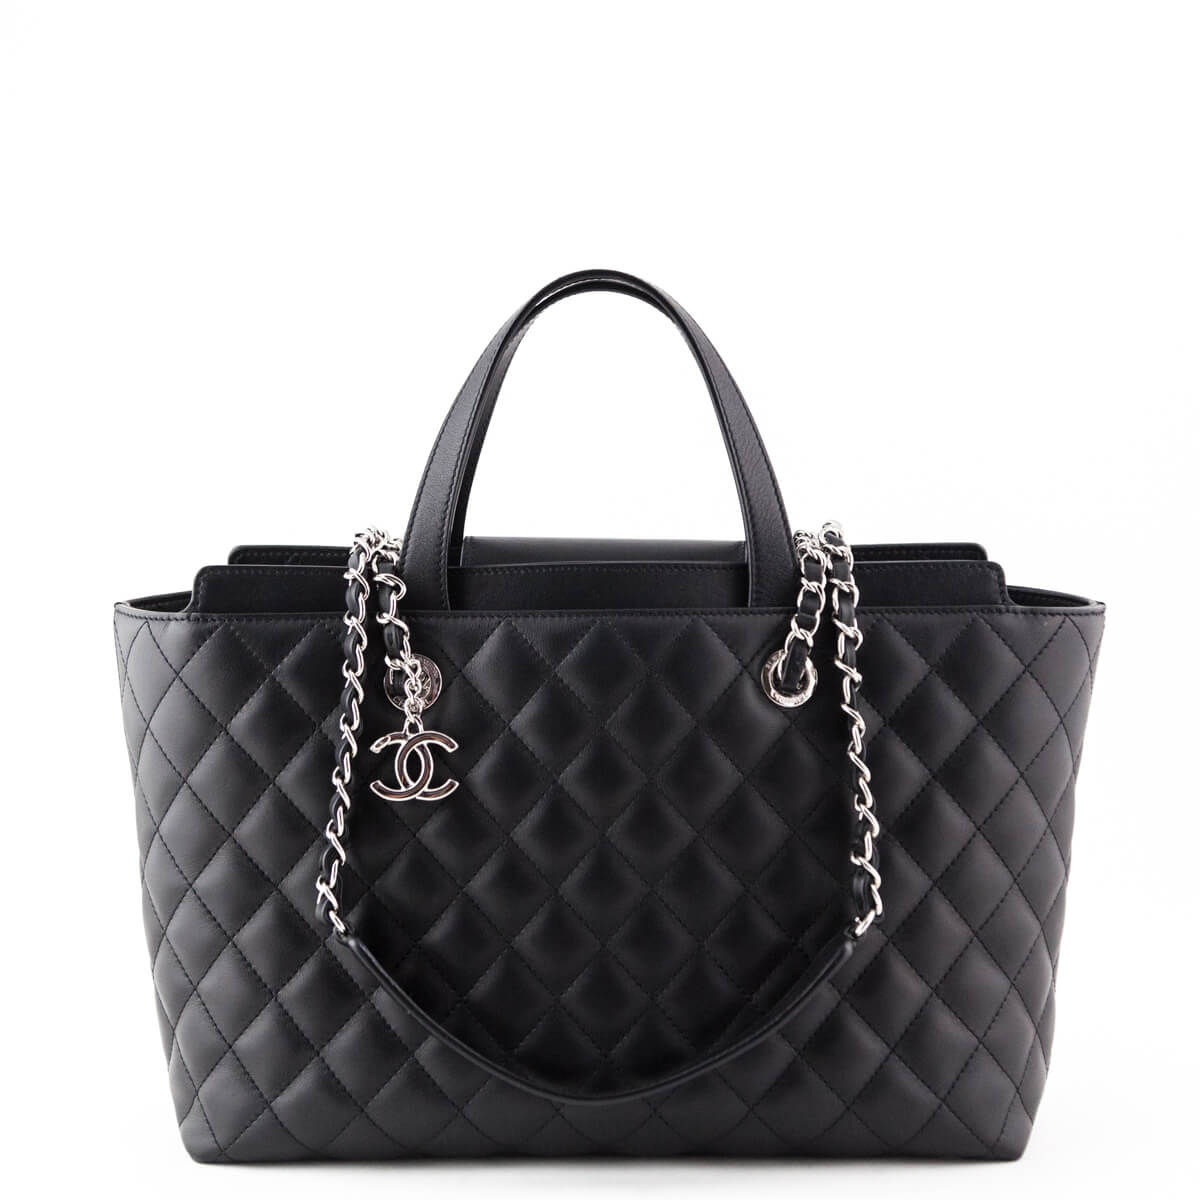 46610b486b57 Chanel Black Calfskin Shopping Tote - LOVE that BAG - Preowned Authentic  Designer Handbags ...